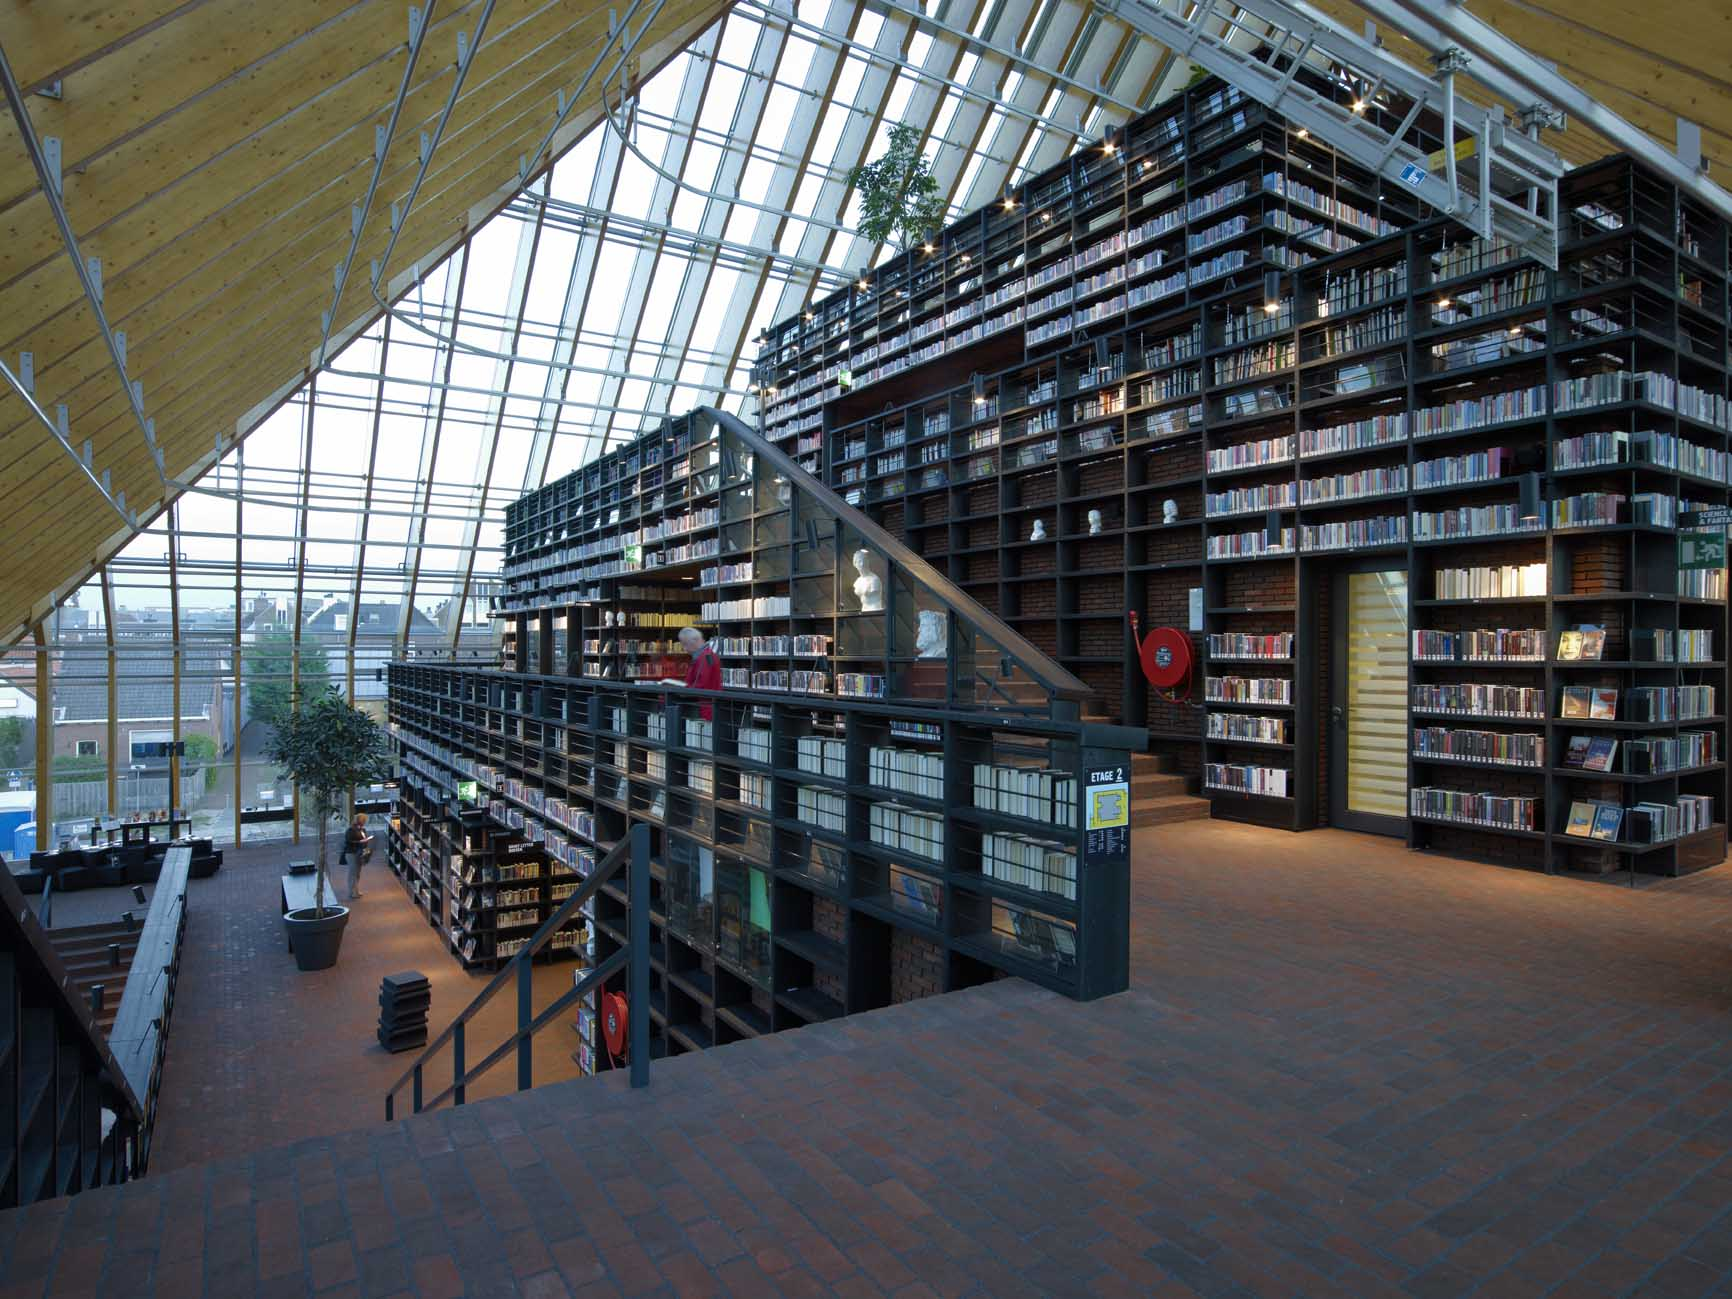 book mountain and dijon teletech both nominated for Mies van der Rohe award 2013